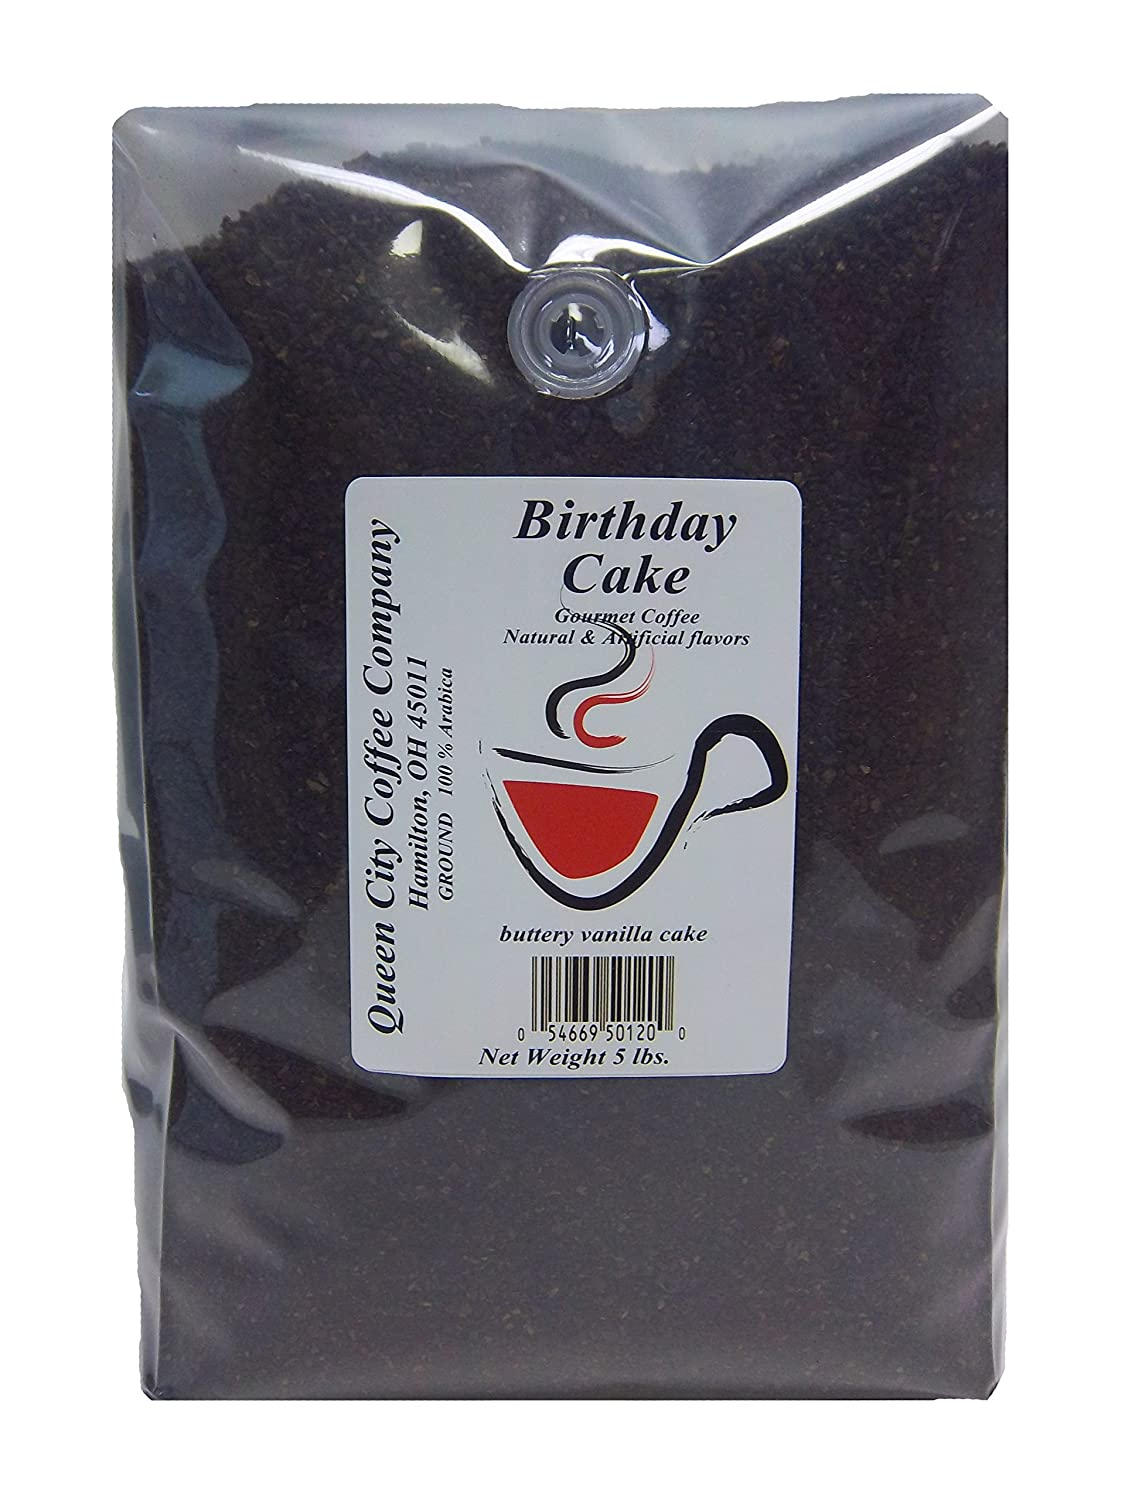 Queen City Coffee Flavored Coffee Birthday Cake 5 Pound Amazon